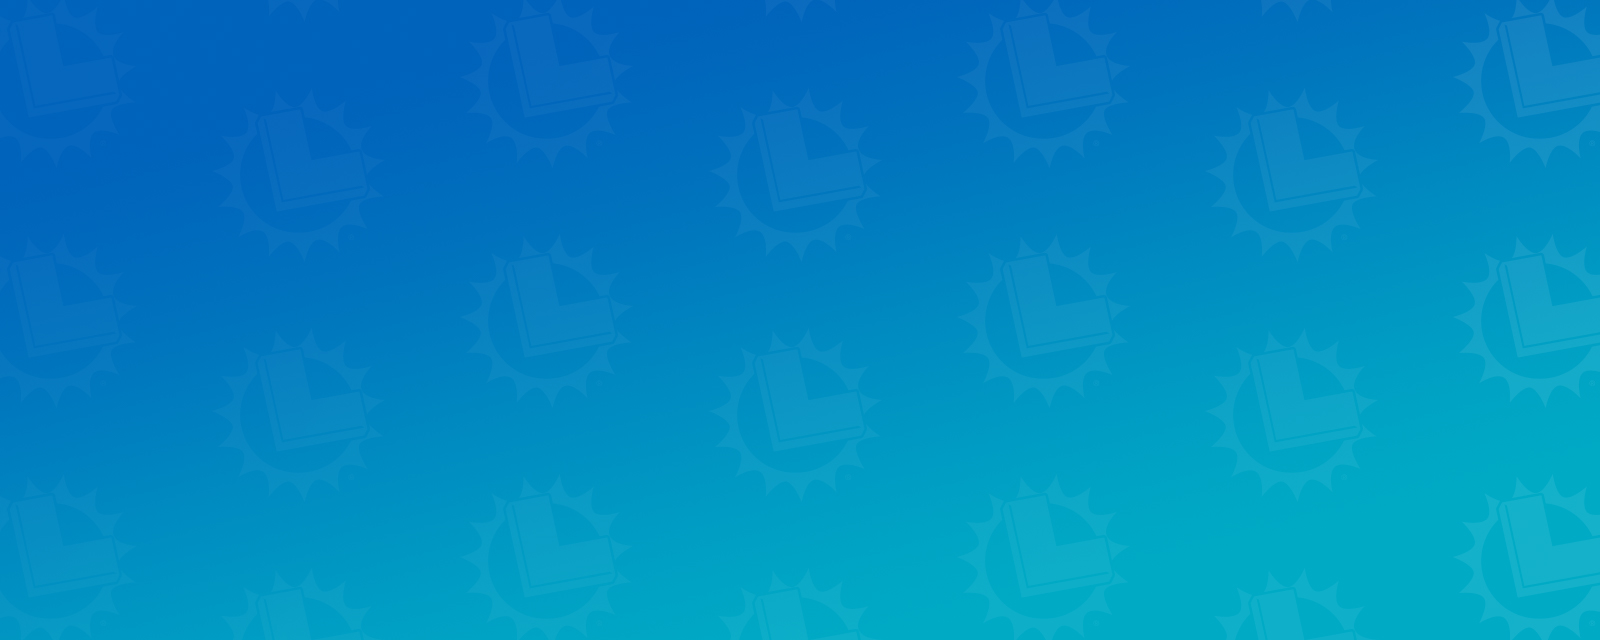 CA Lottery Logos on Blue Background